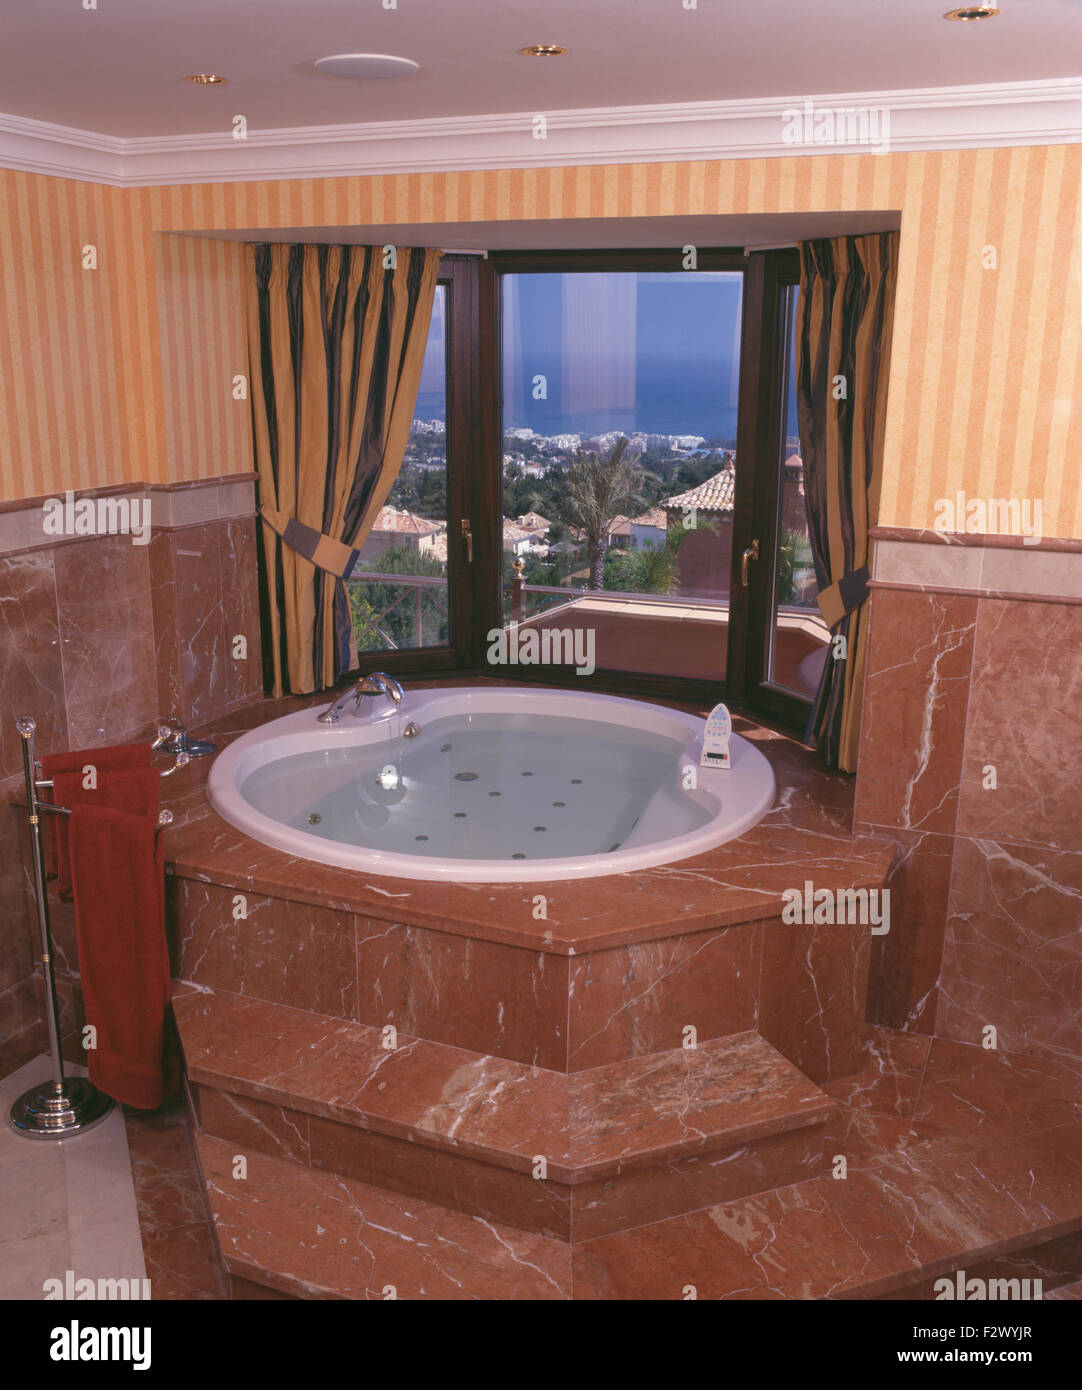 spanish villa bathroom with brown marble steps up to jacuzzi bath